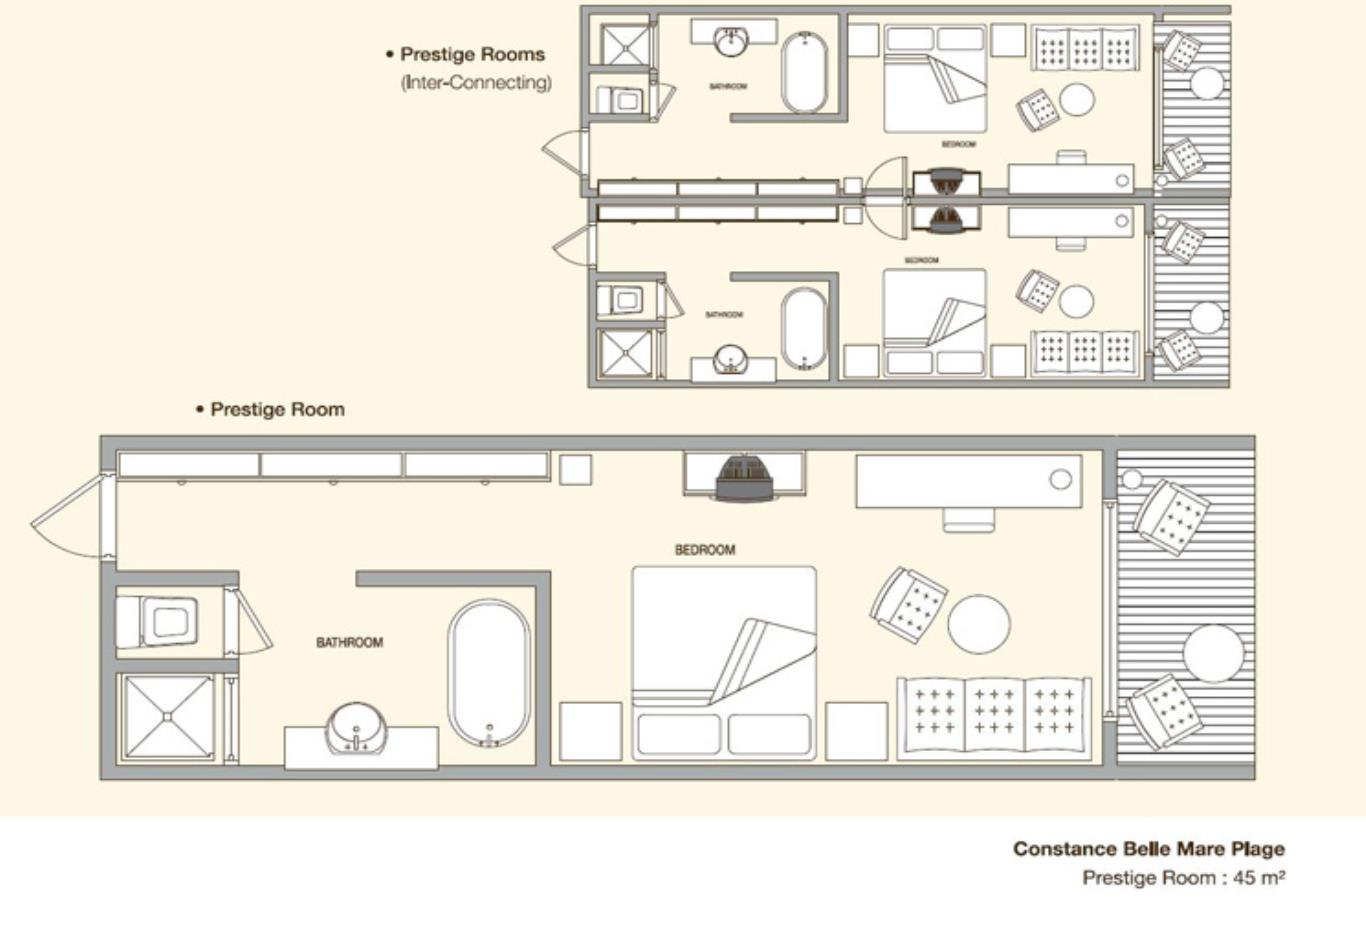 Prestige Room Floor Plan